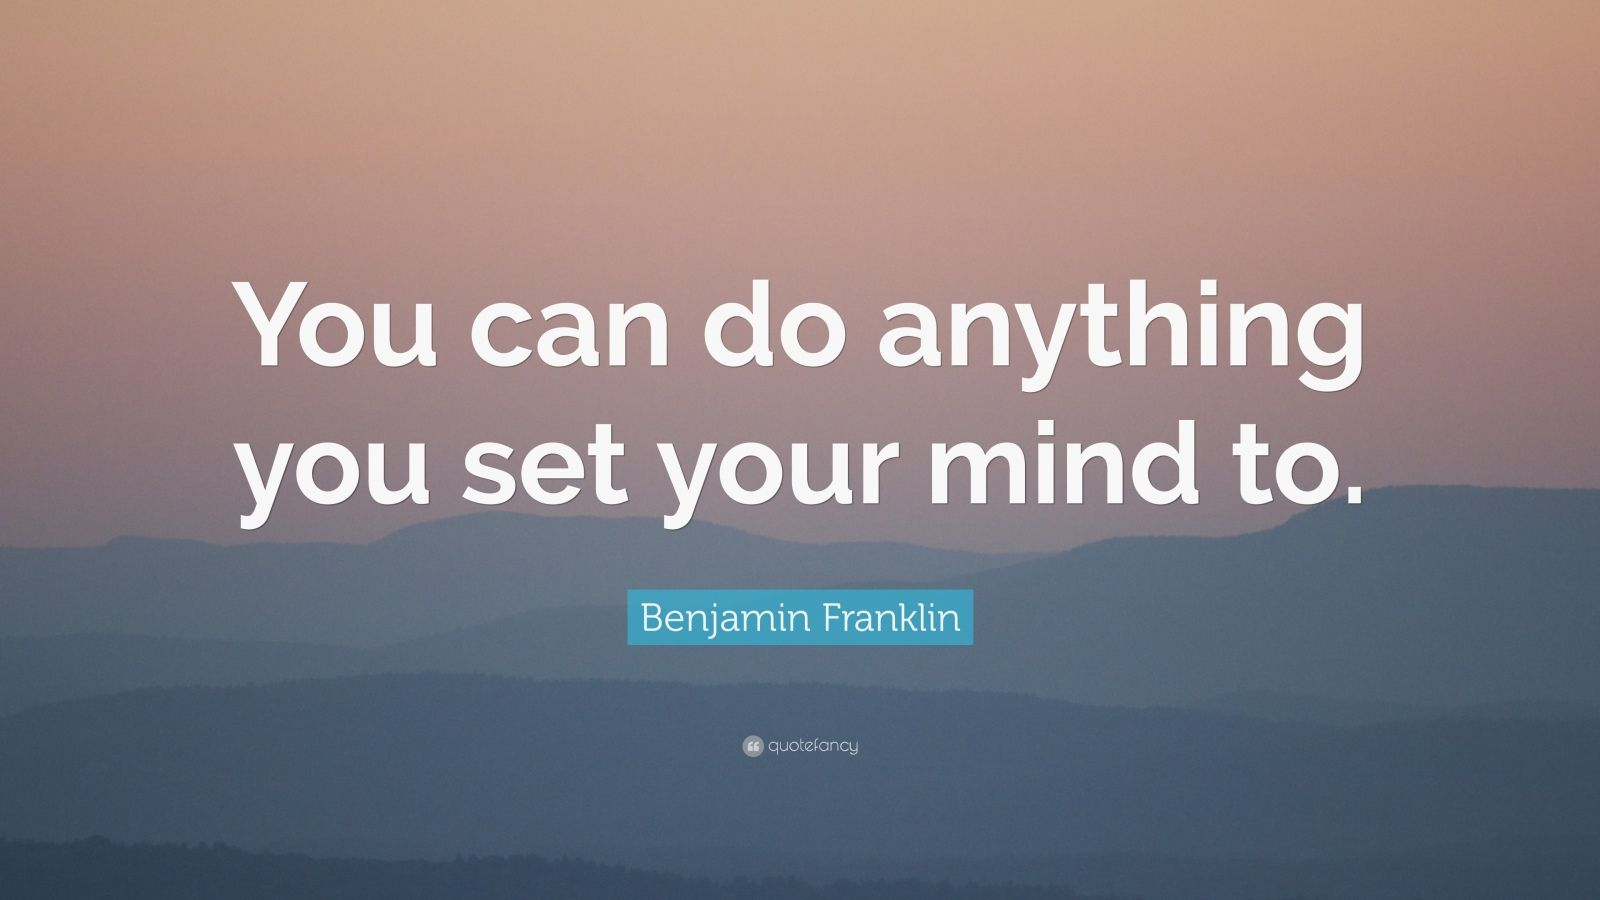 Benjamin Franklin Quotes Wallpaper Benjamin Franklin Quote You Can Do Anything You Set Your